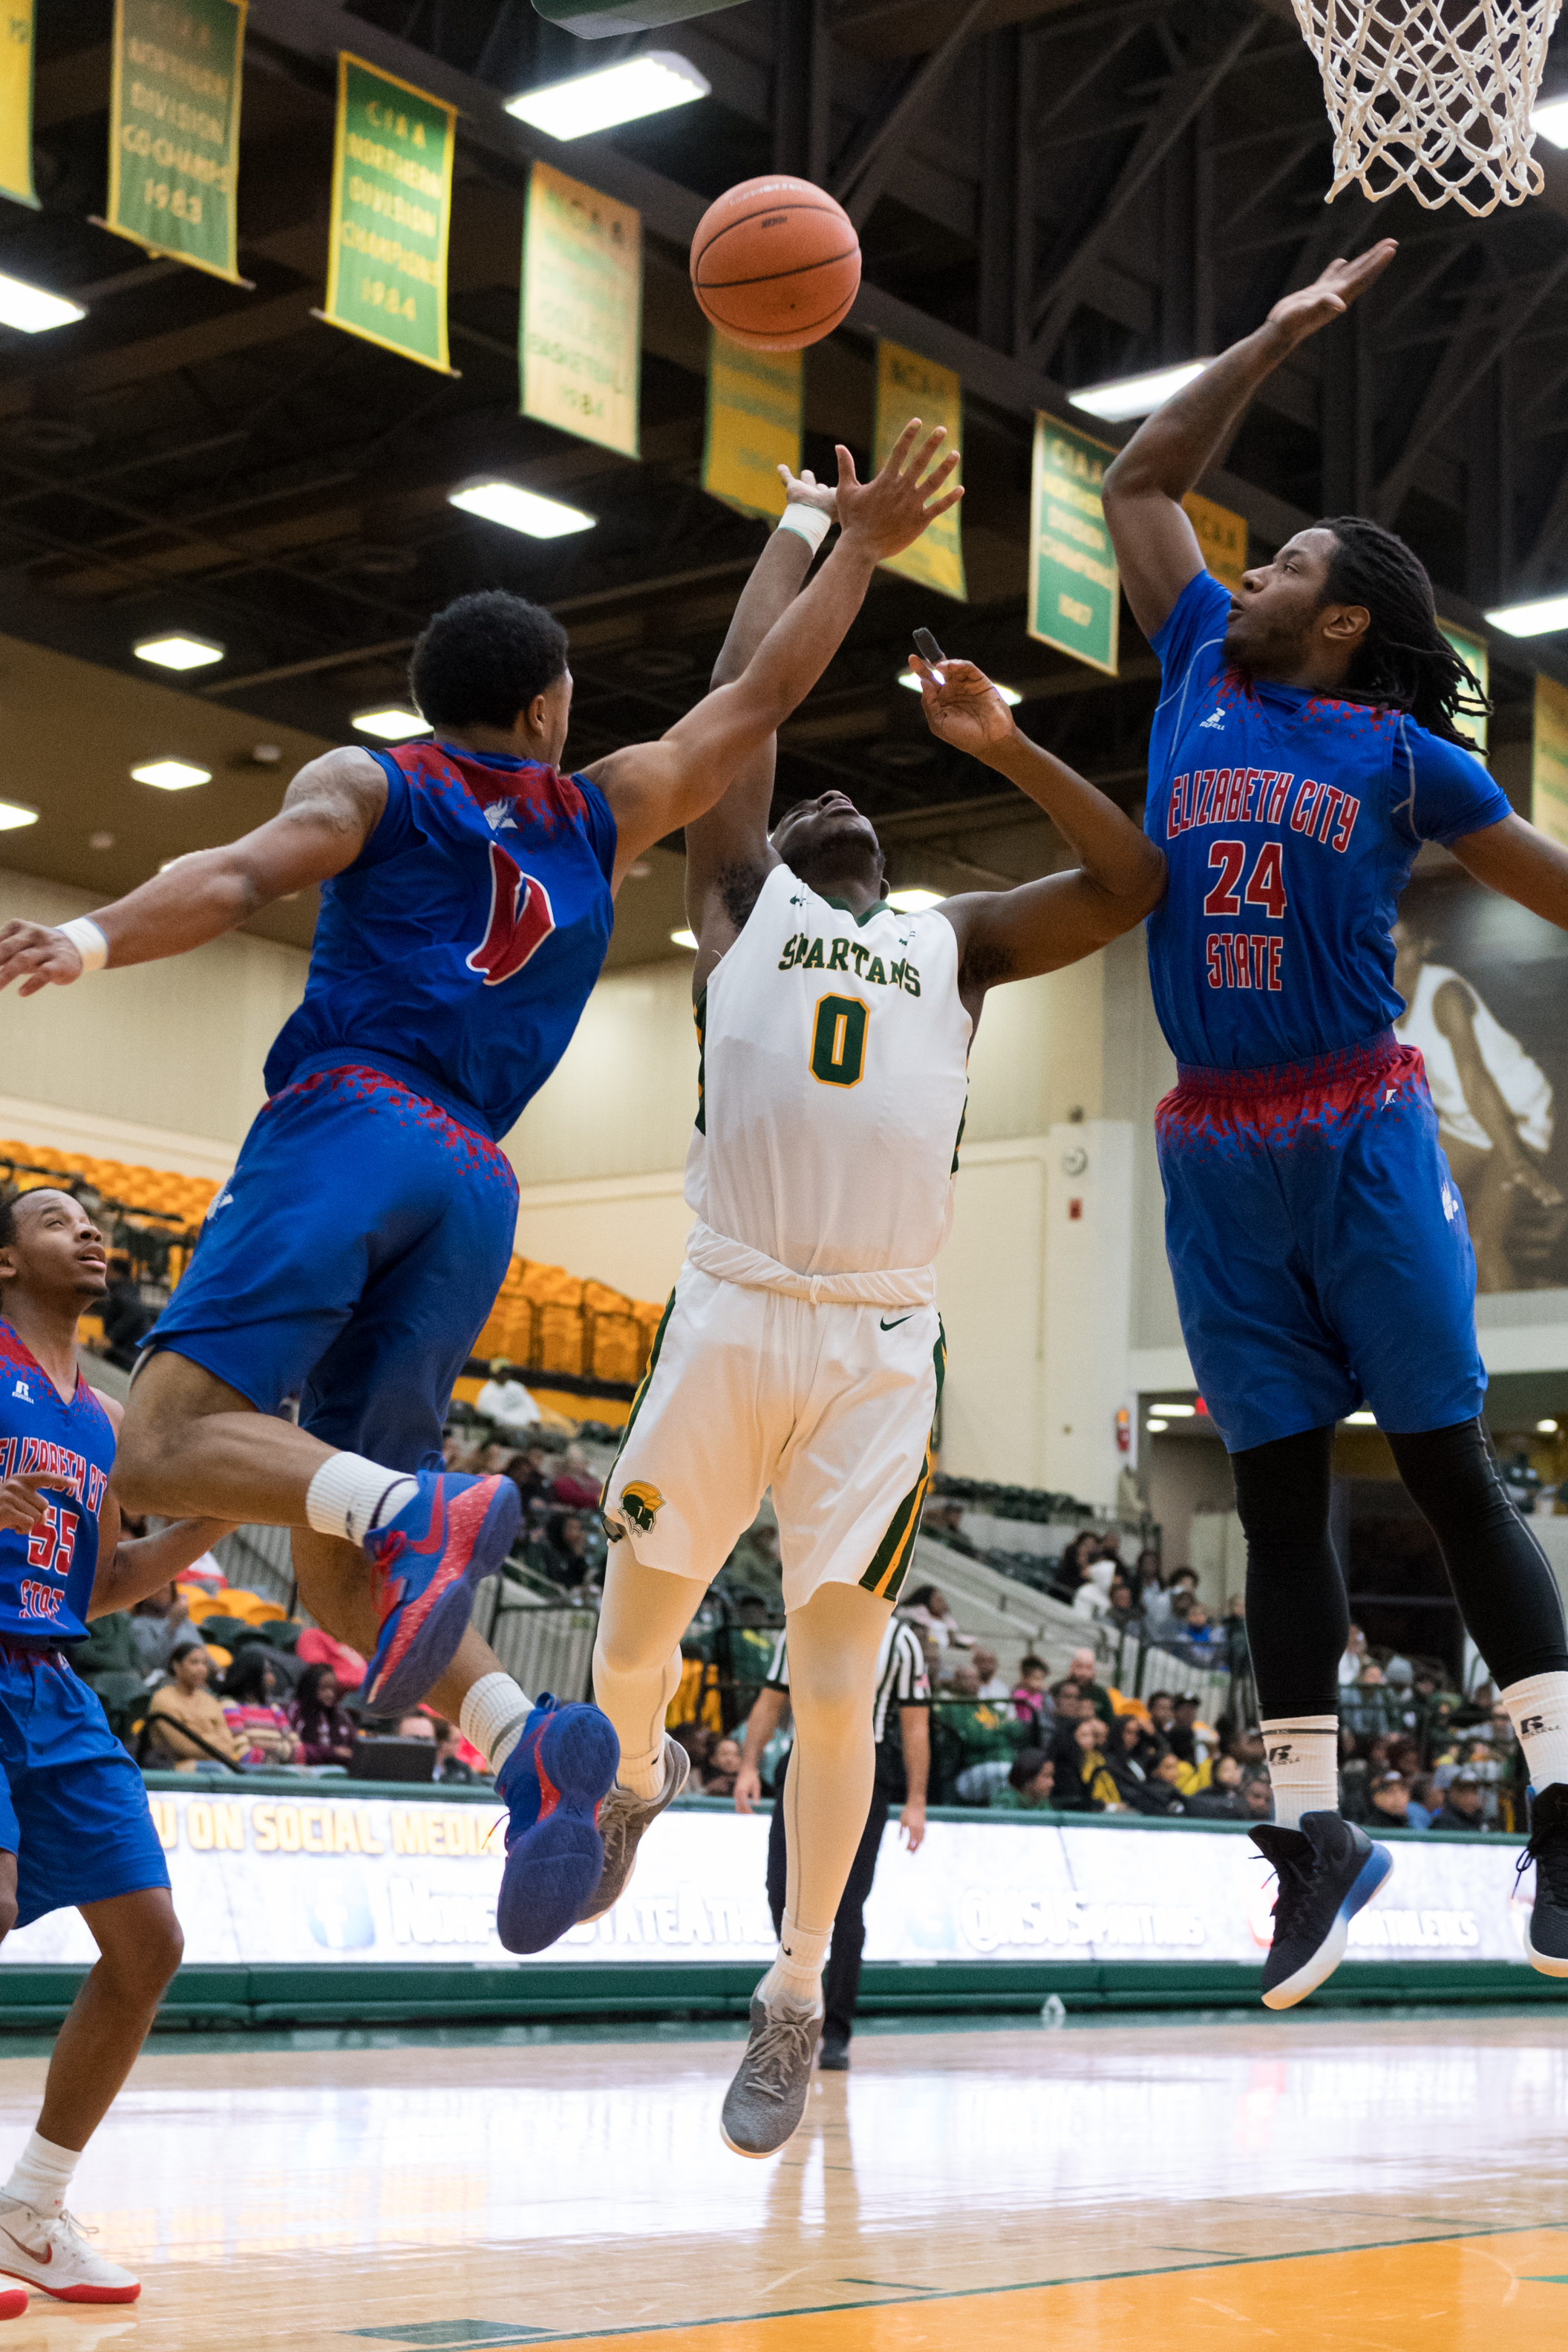 Norfolk State Spartans guard Mastadi Pitt goes up for a shot under pressure from Elizabeth City State Vikings guard Zaccheus Hobbs and forward Charles Woods during the Monday, January 15, 2018 game. The Vikings defeated the Spartans 76 to 67.